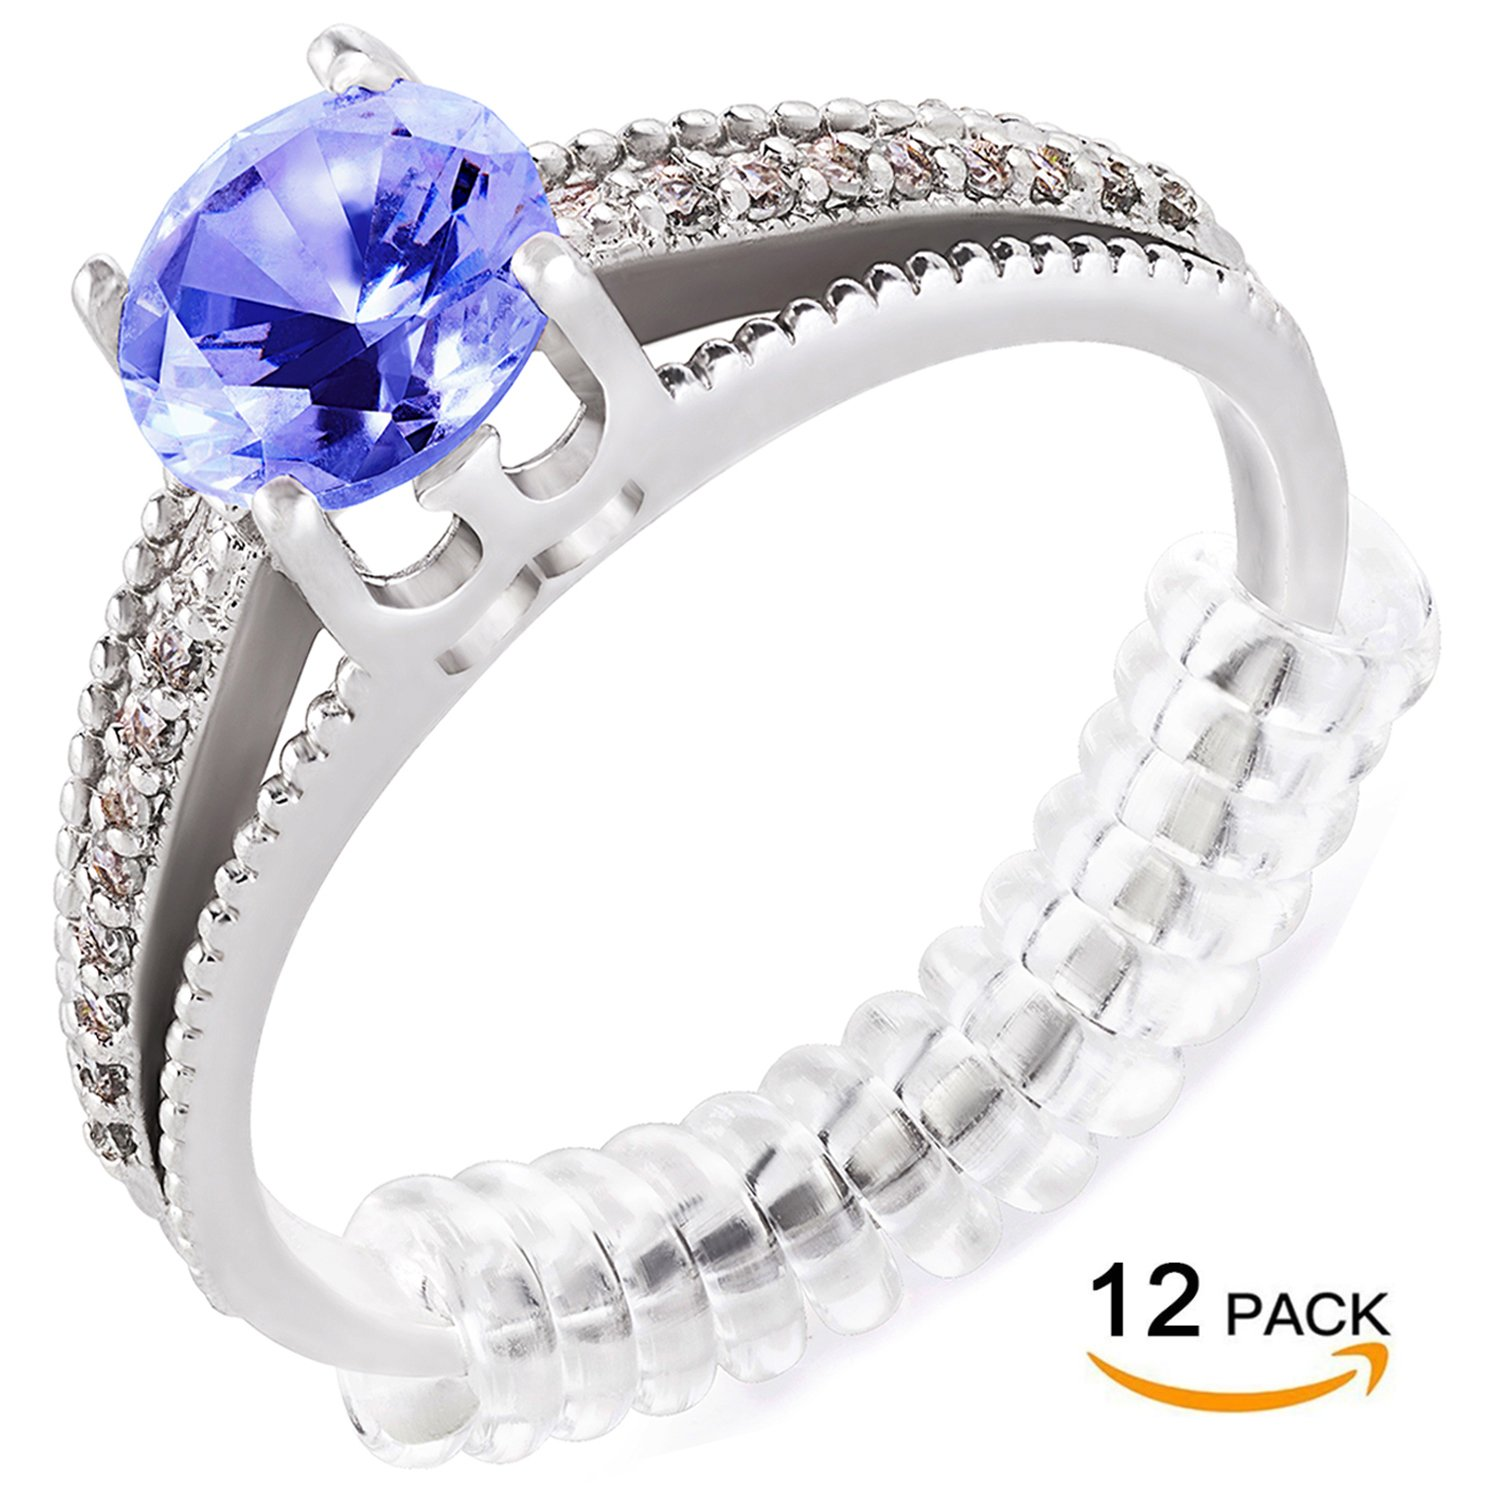 Best Rated in Jewelry Casting Supplies & Helpful Customer Reviews